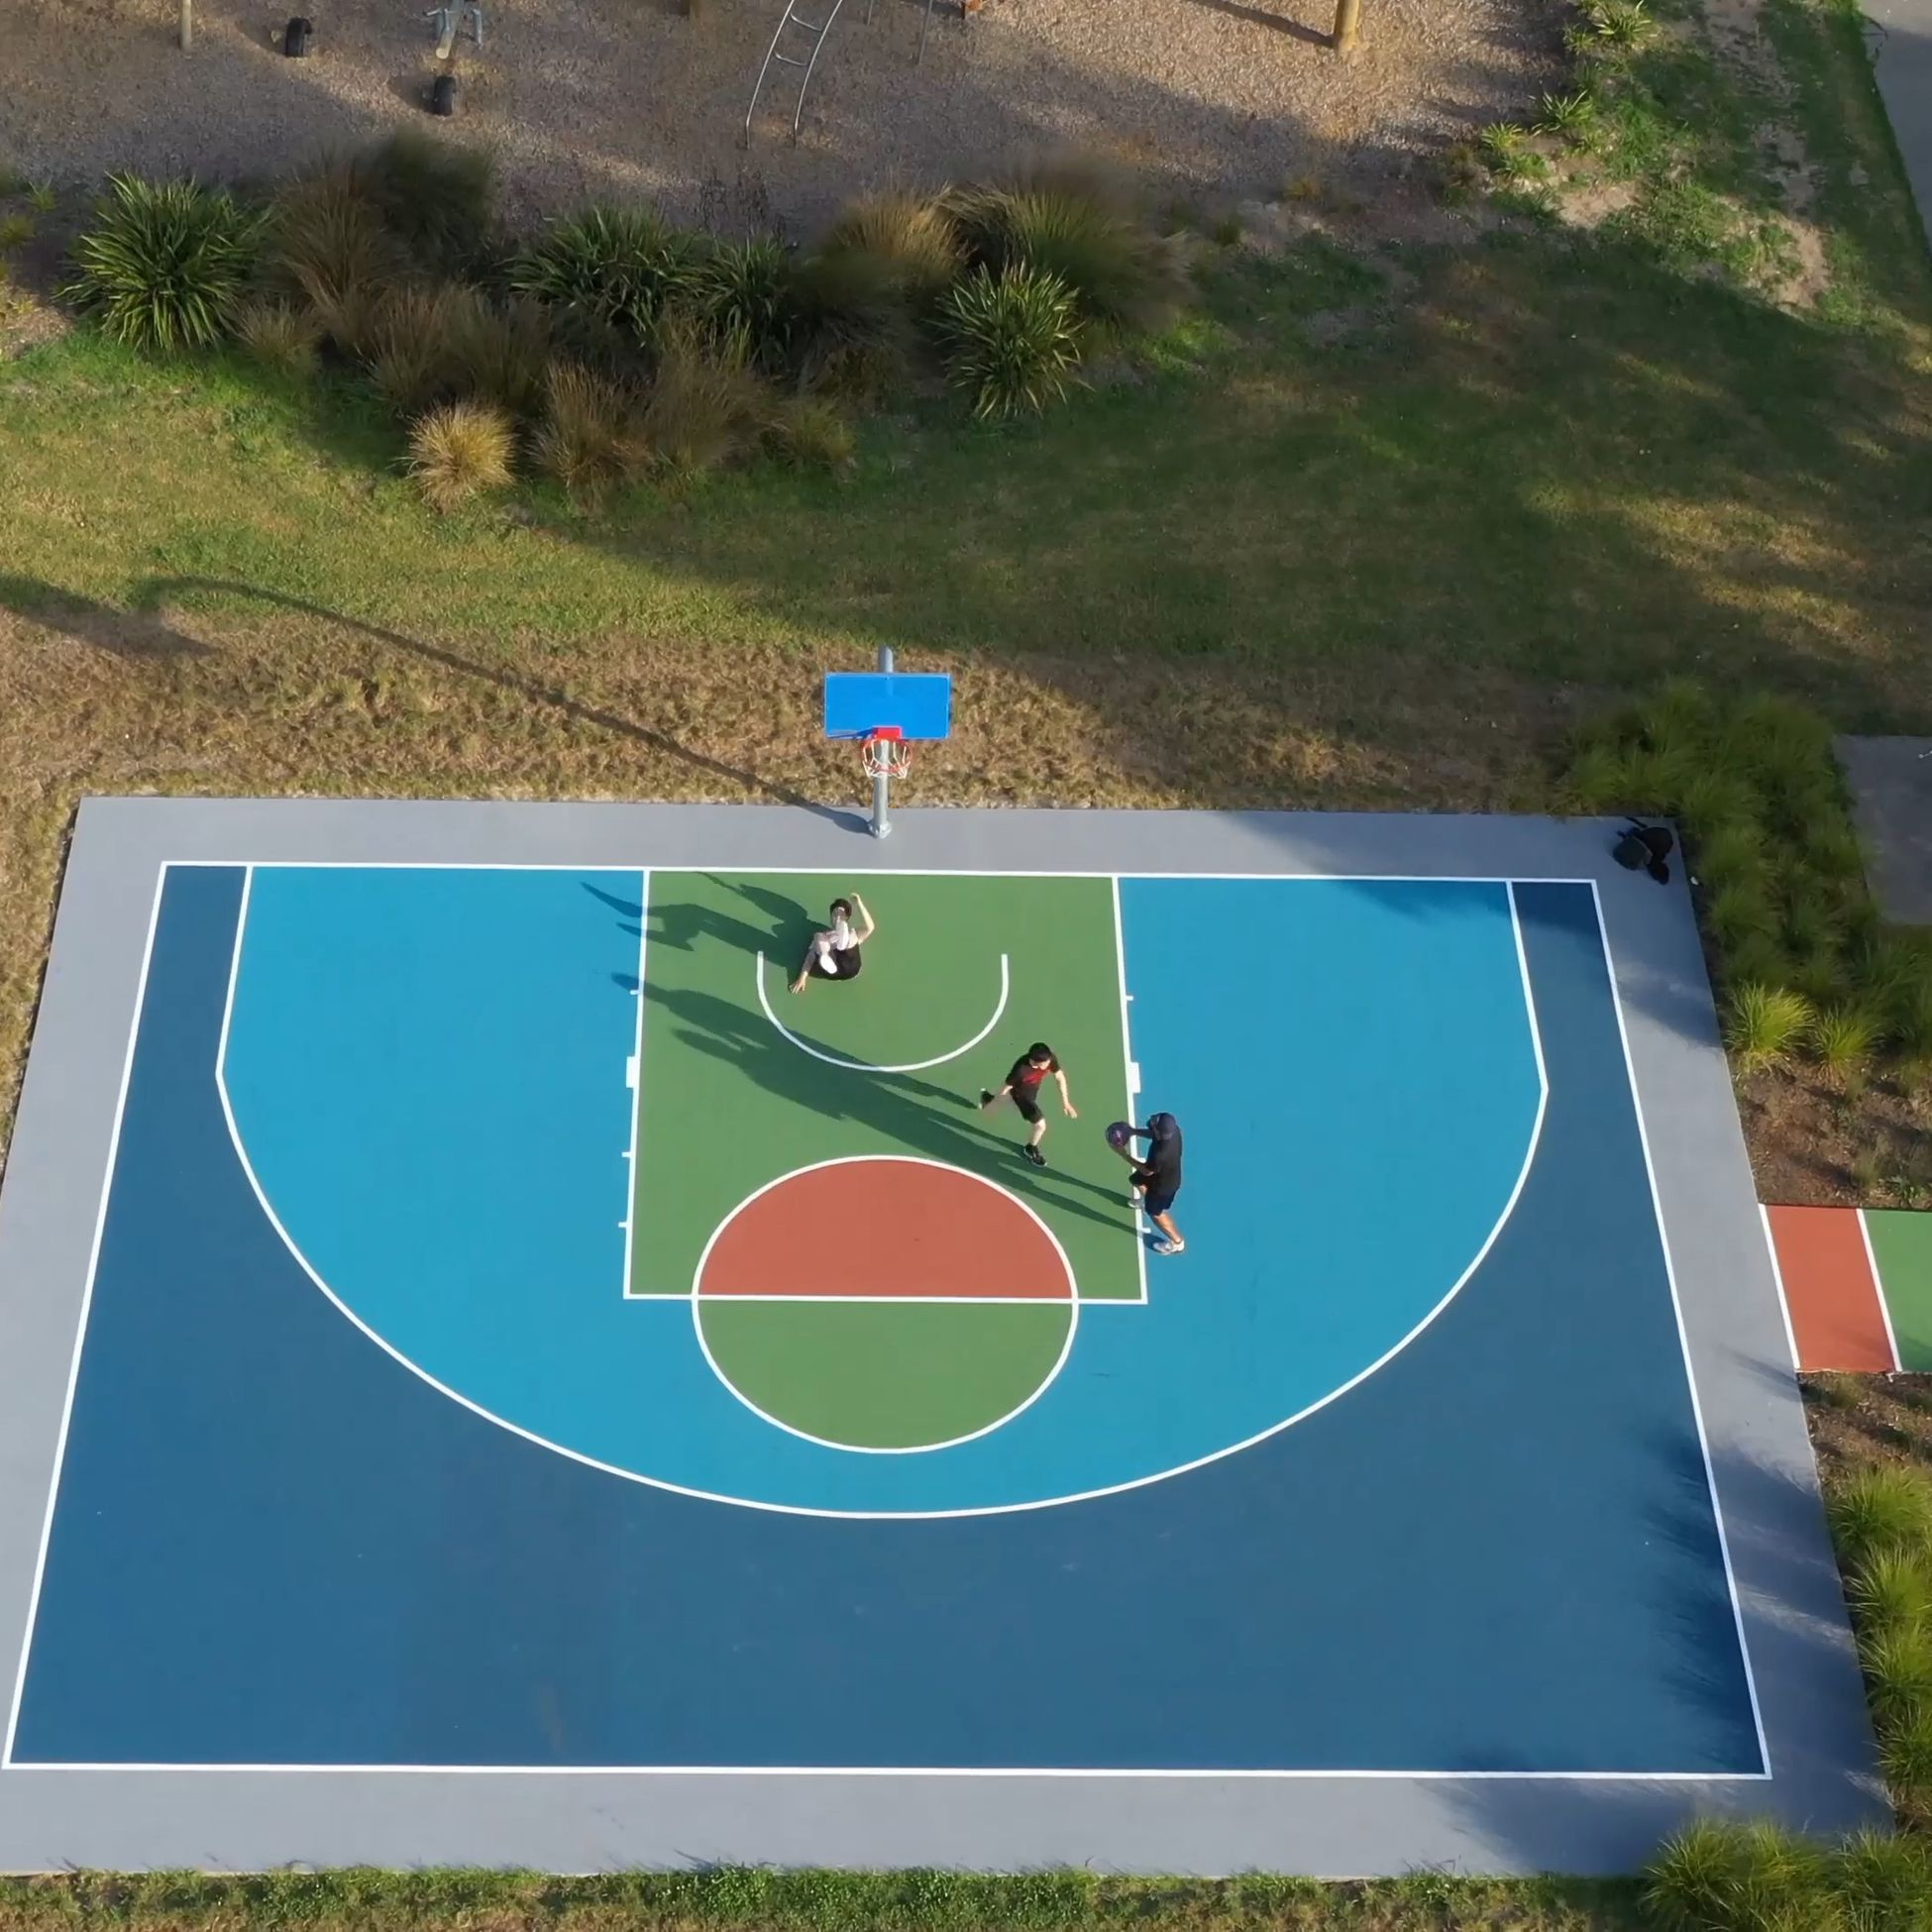 Basketball 3X3 Court Unsworth Reserve